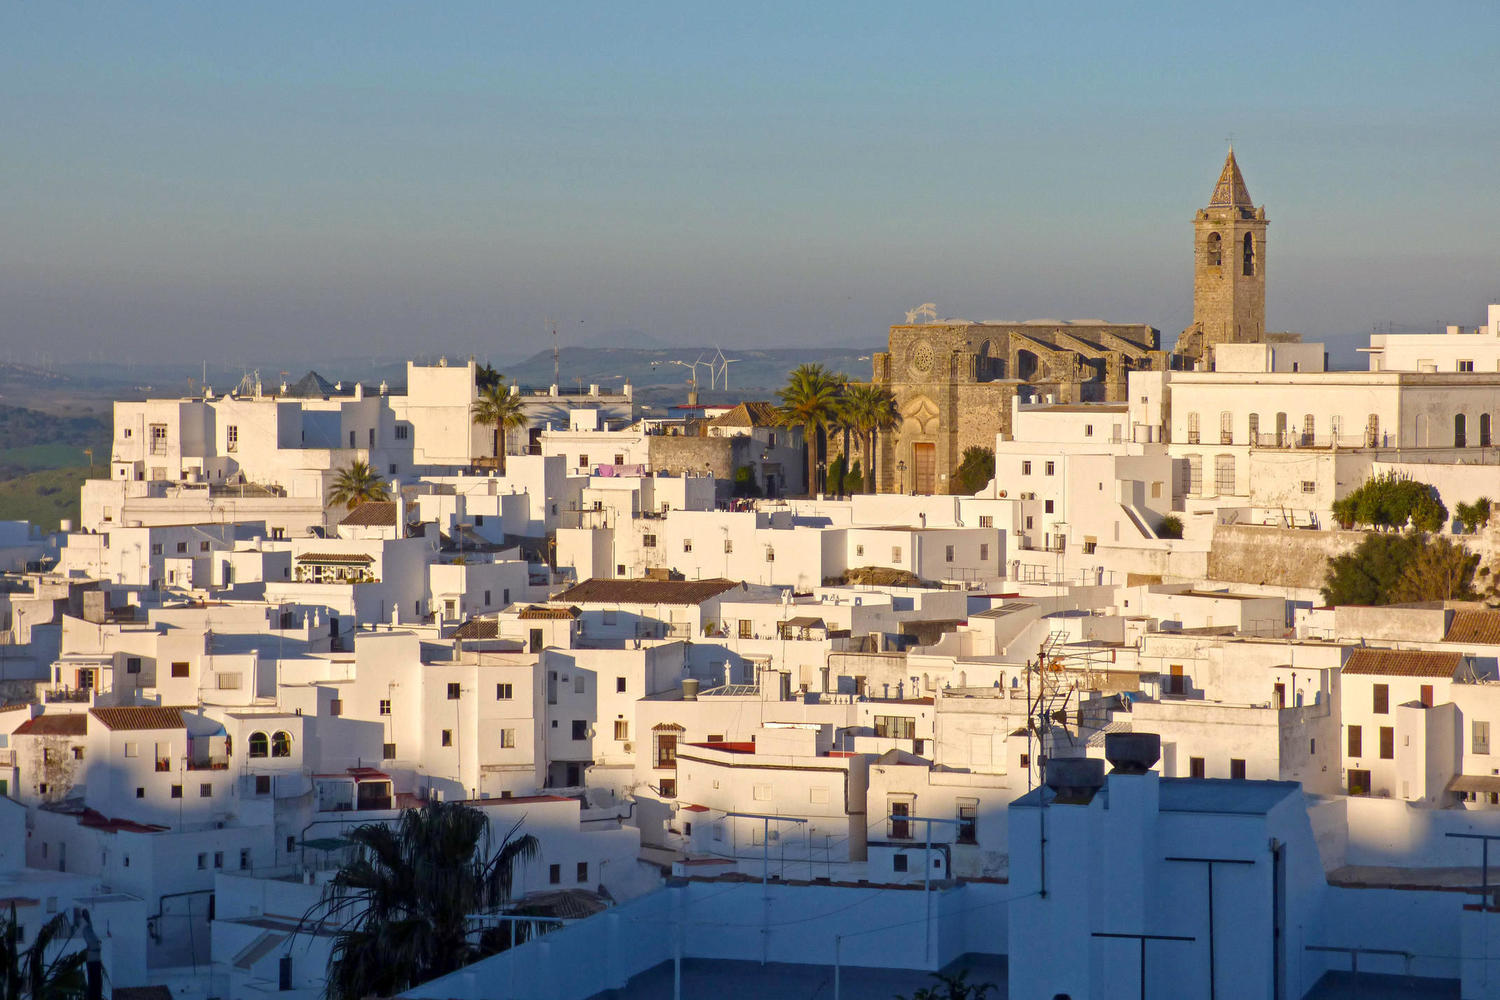 Vejer skyline at sunset, Cadiz